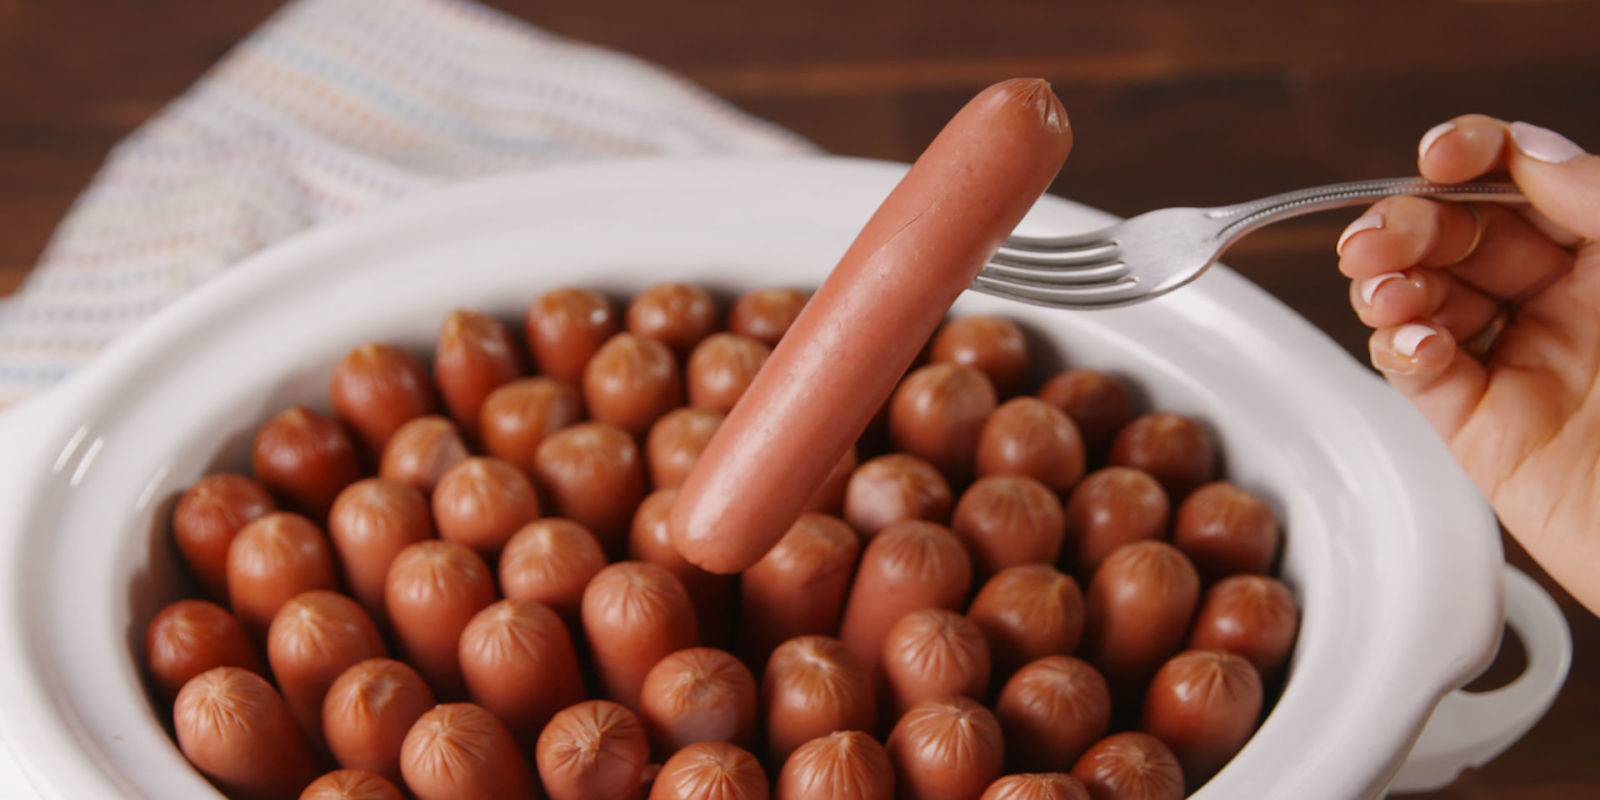 Slow Cooker Hot Dogs  Best Slow Cooker Hot Dogs Recipe How to Make Slow Cooker